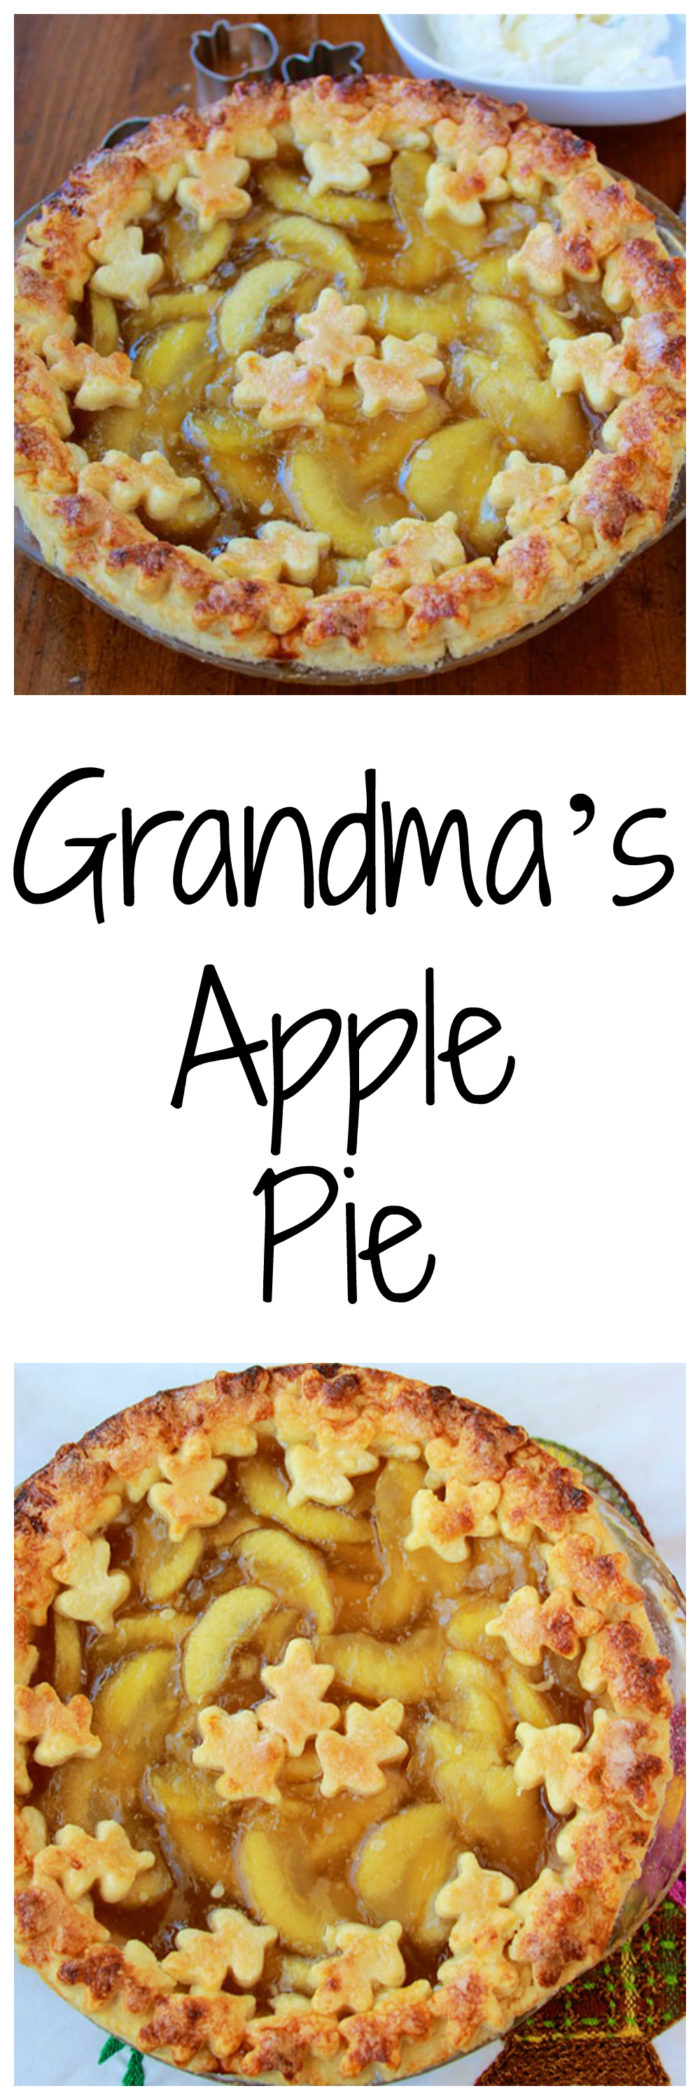 Grandma's Apple Pie is one of our very favorites and the pie crust is flaky and just to-die-for! www.cookingwithruthie.com